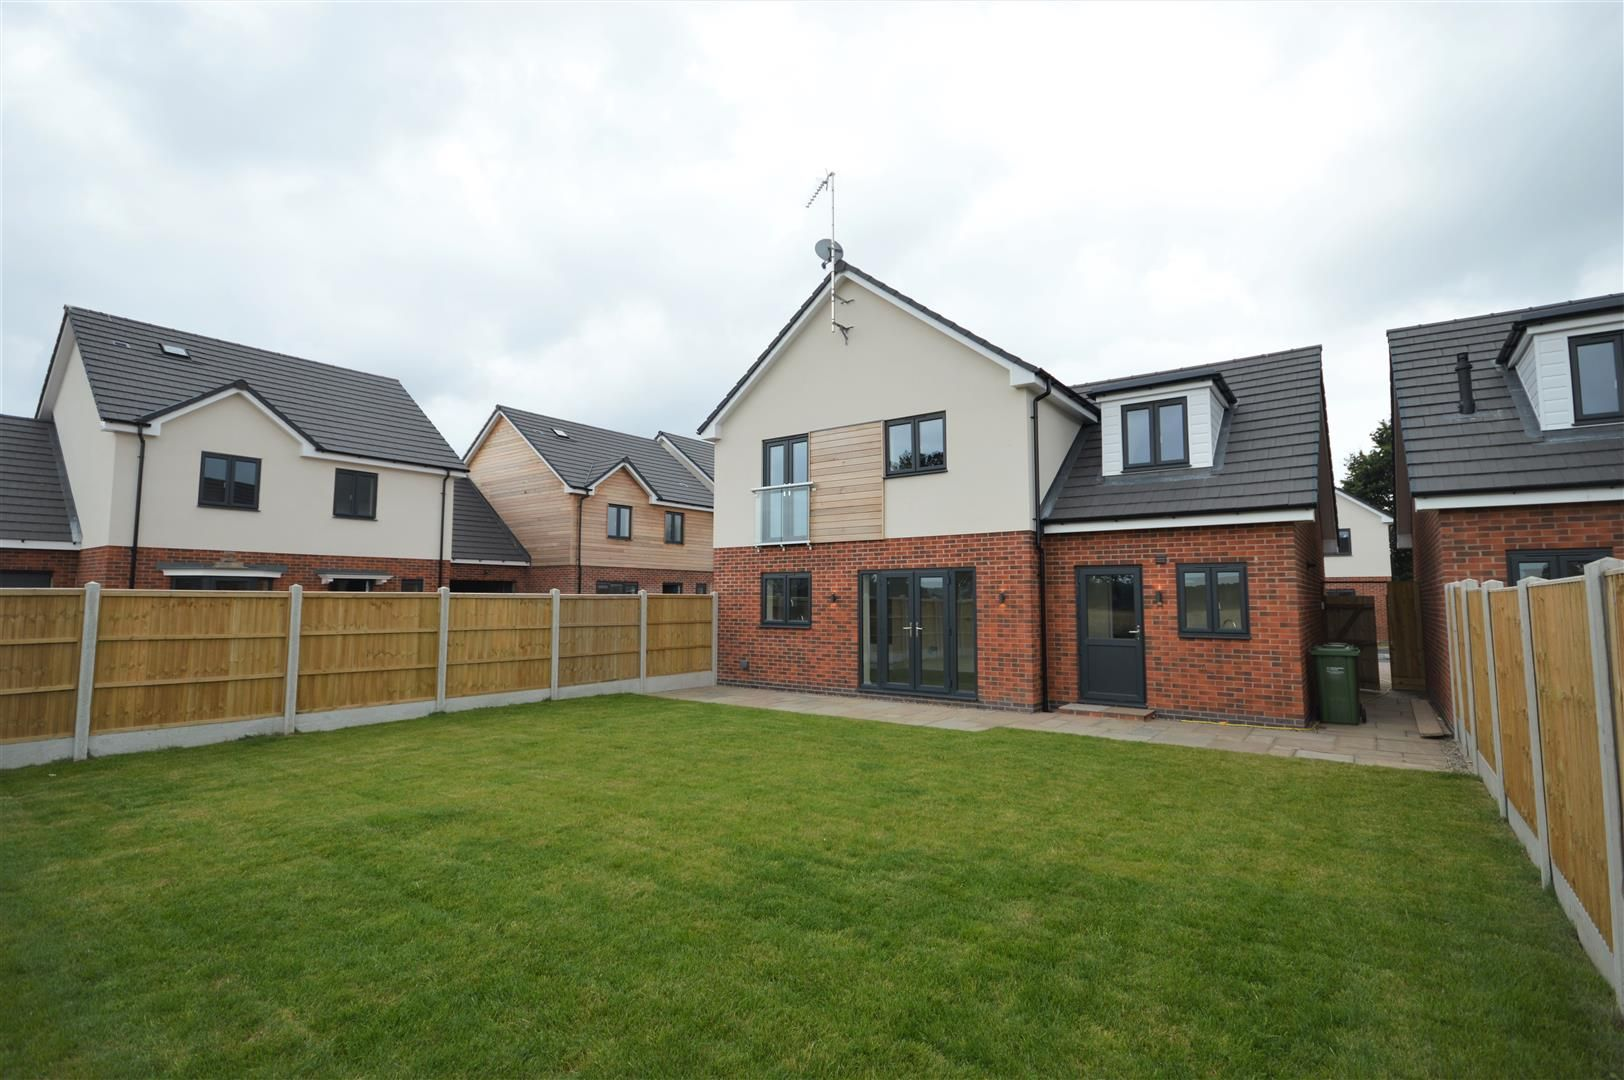 4 bed detached for sale in Kingsland 9